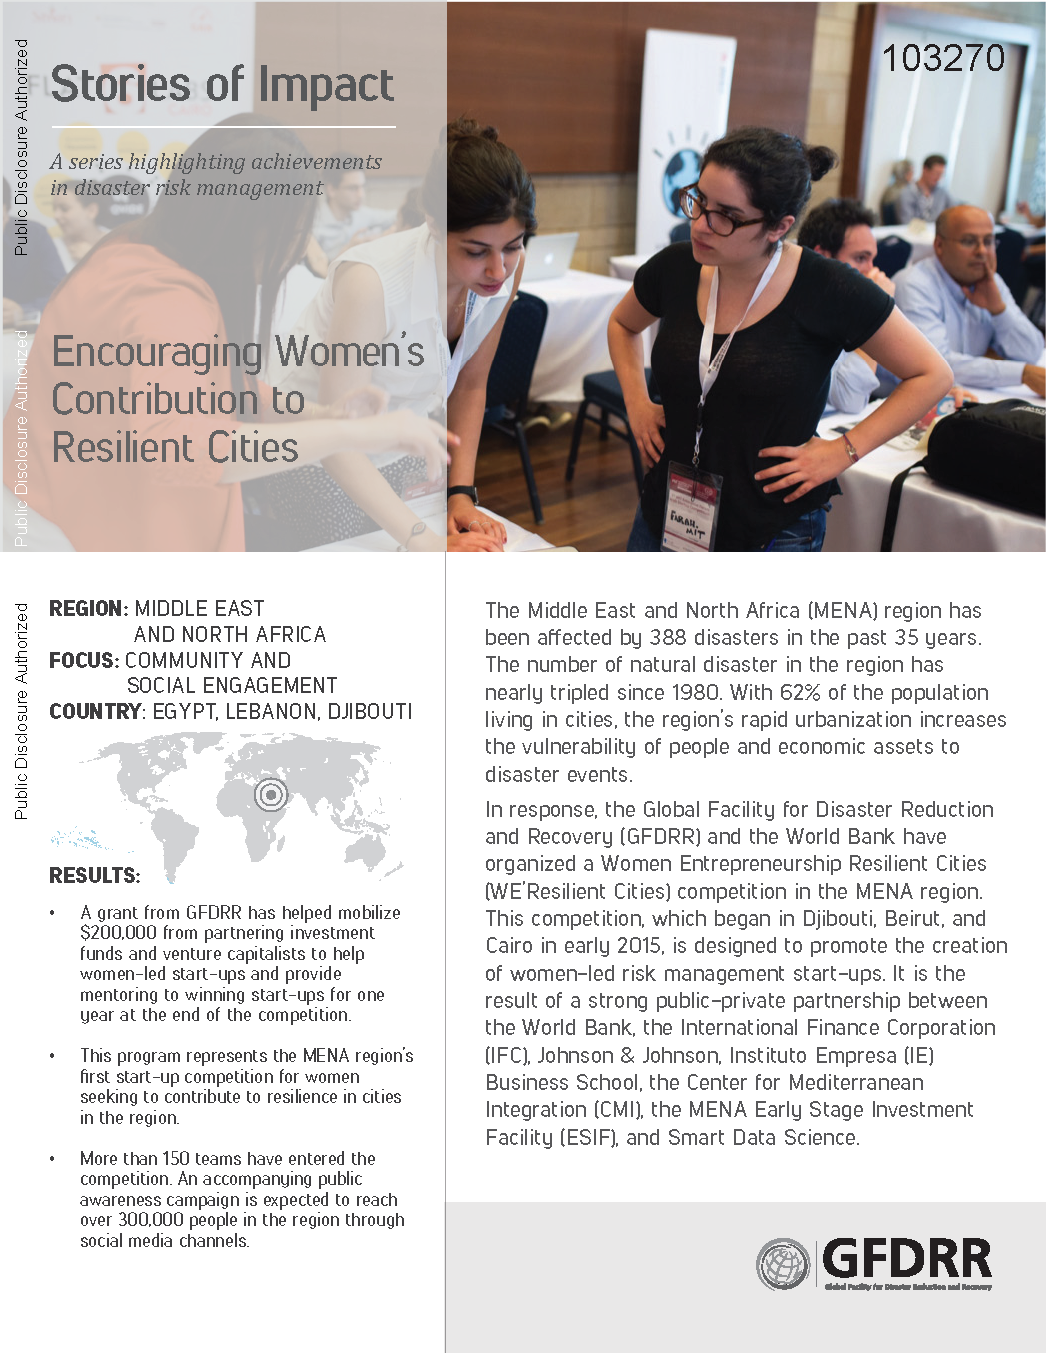 Stories of Impact: Encouraging Women's Contribution to Resilient Cities